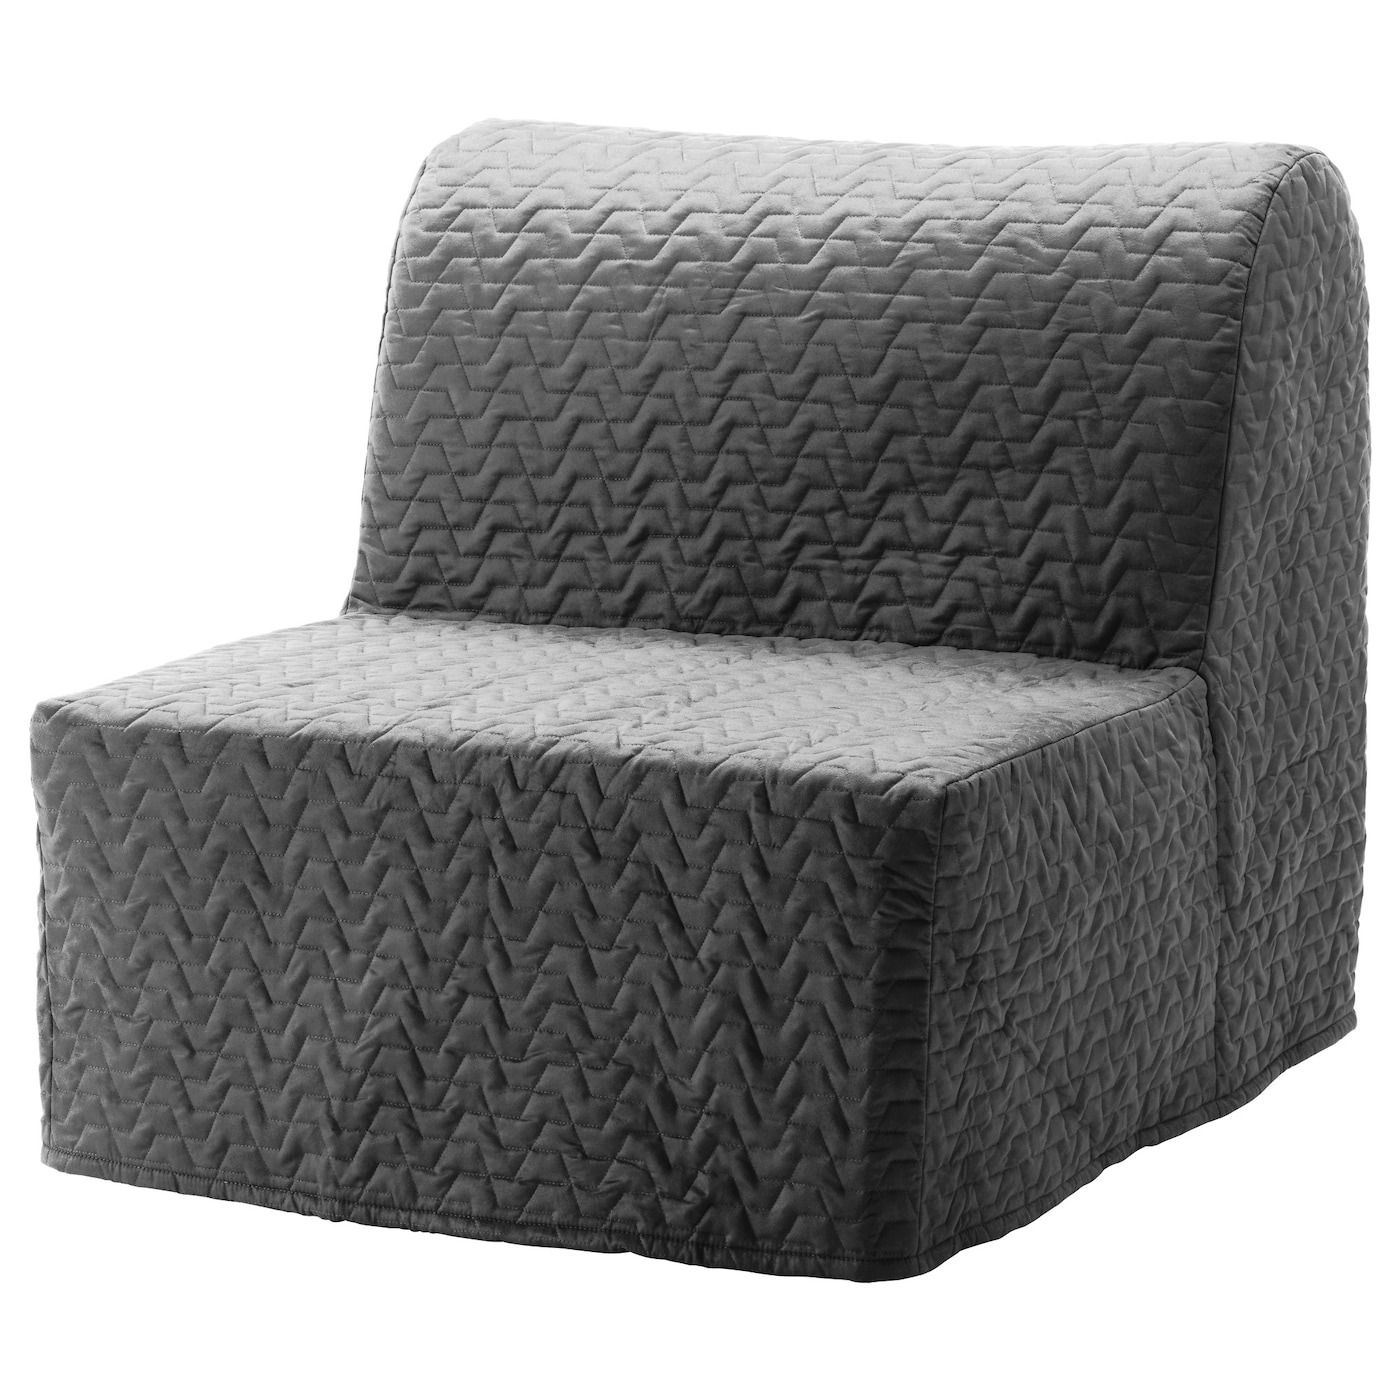 Ikea Lycksele Murbo Chair Bed Comfortable And Firm Foam Mattress For Use Every Night